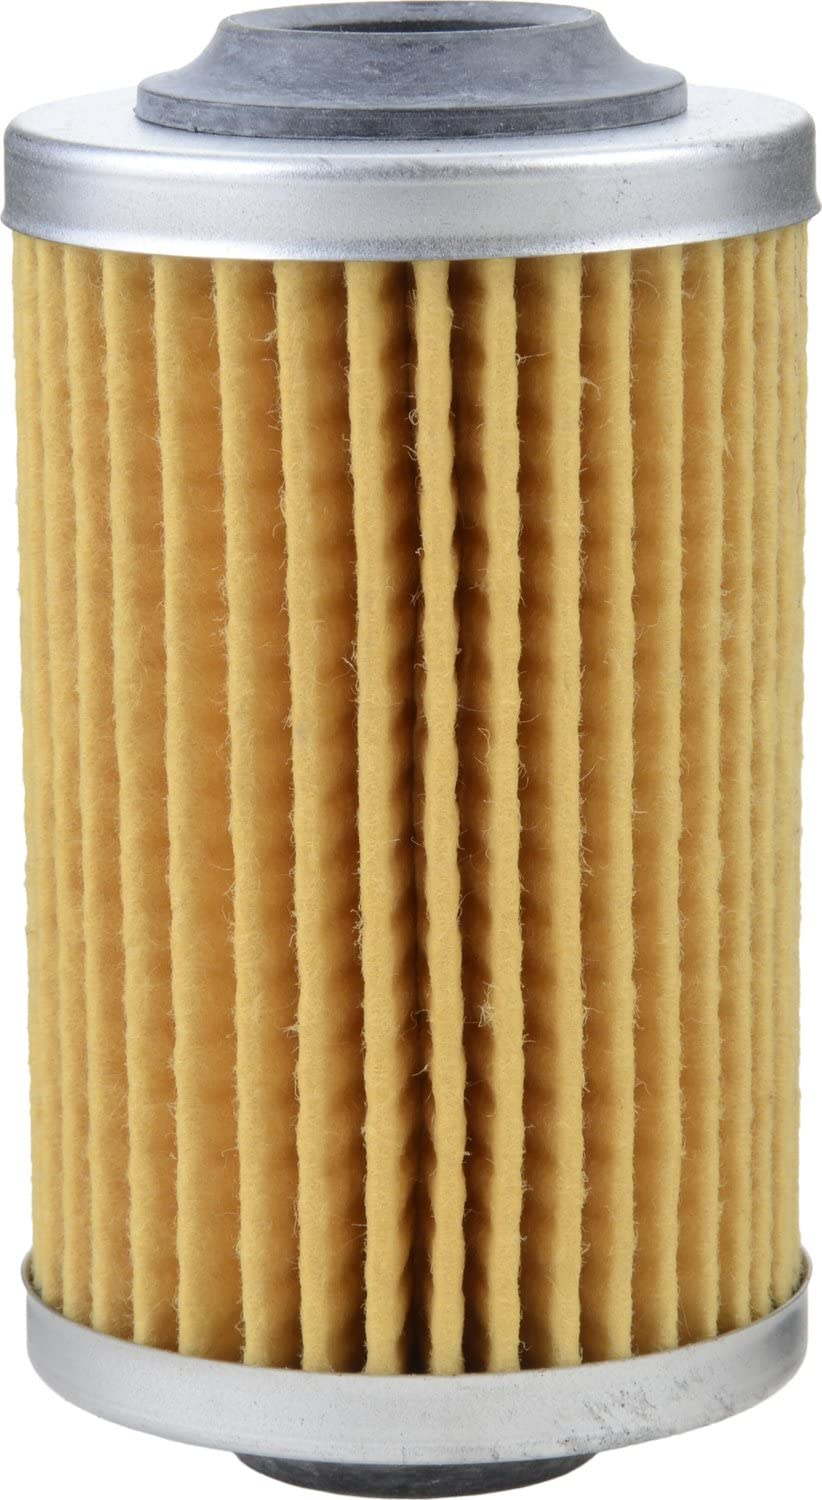 Ranking TOP17 Luber-finer P2129-12PK Oil Max 60% OFF Pack 12 Filter